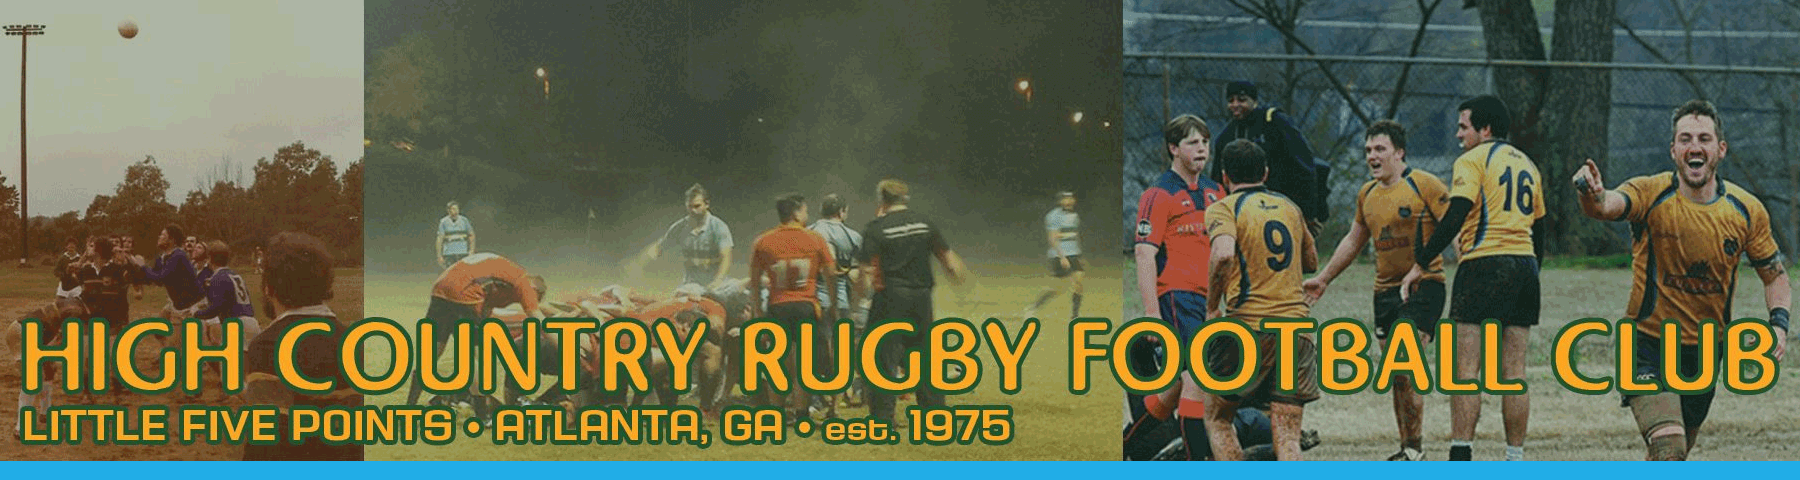 High Country Rugby Football Club